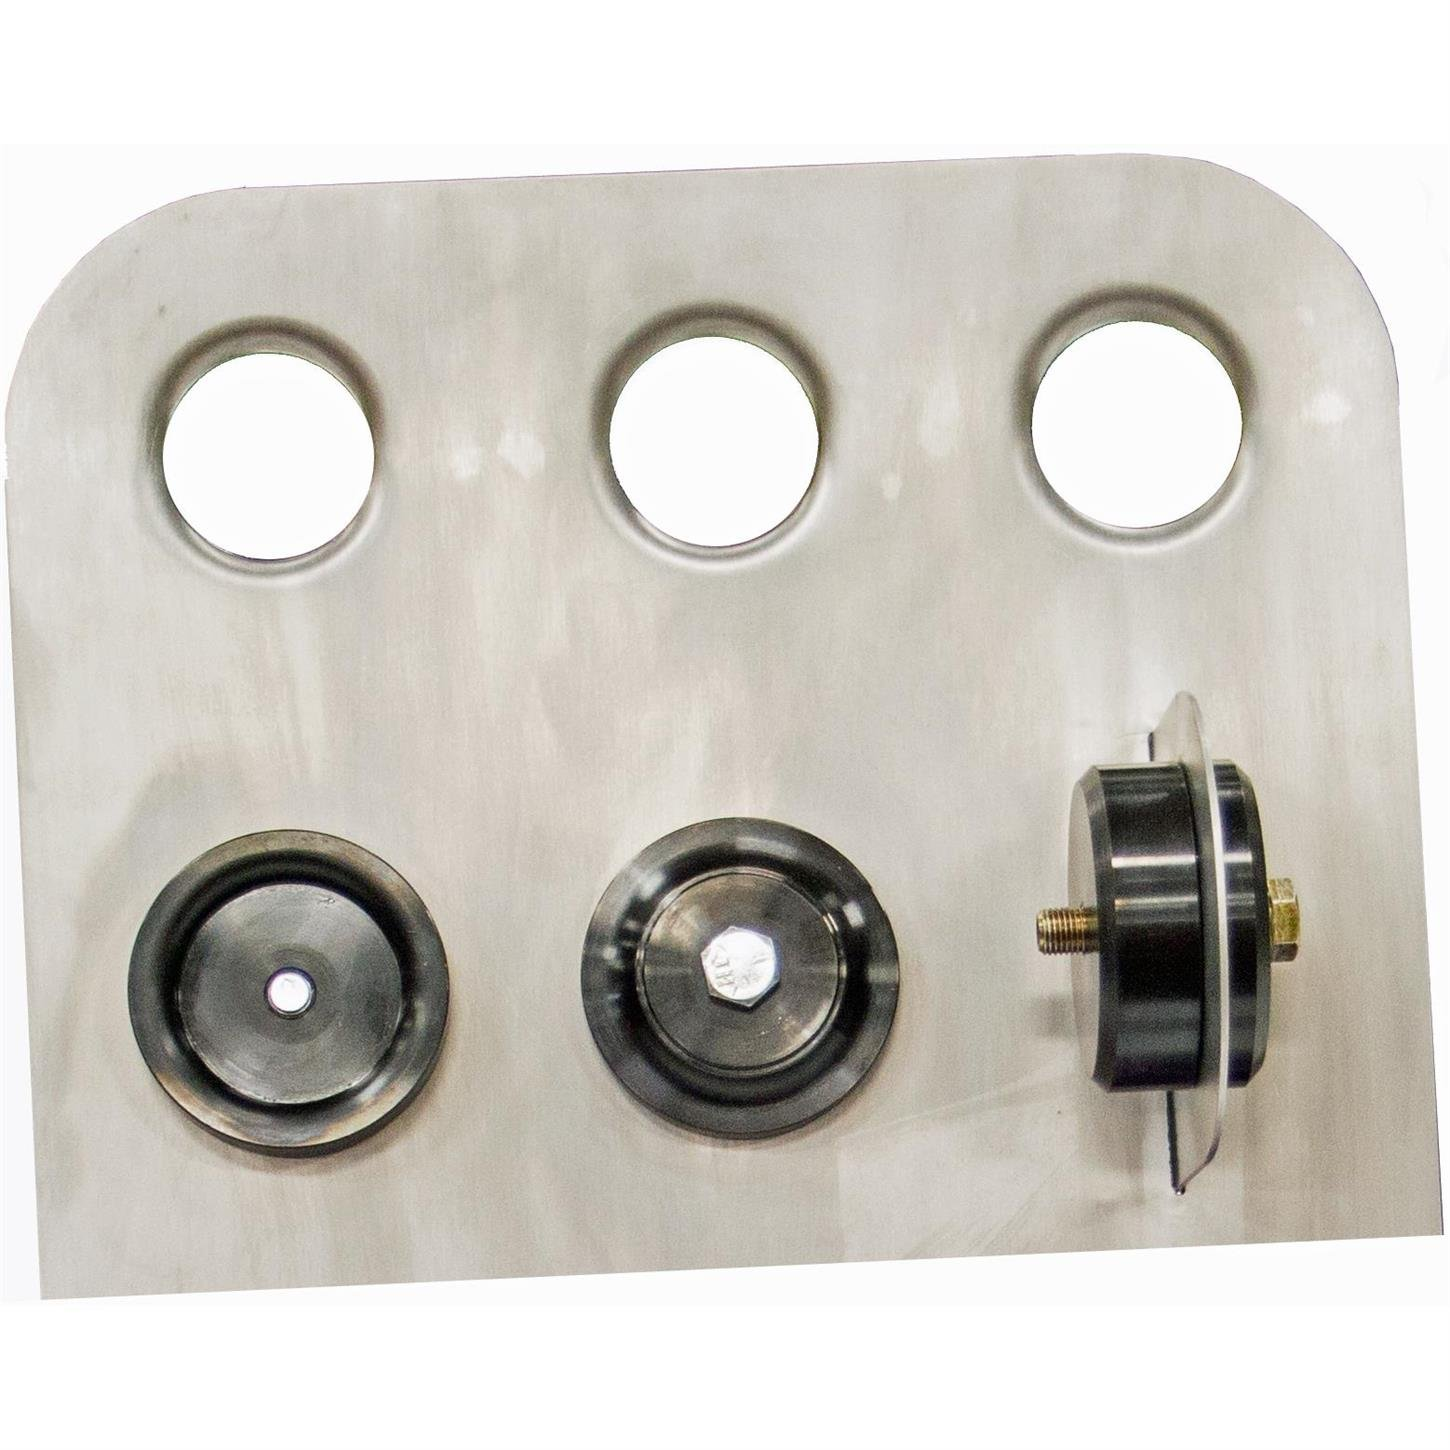 Sheet Metal Flared Hole Dimple Dies, 1 25 Inch Speedway